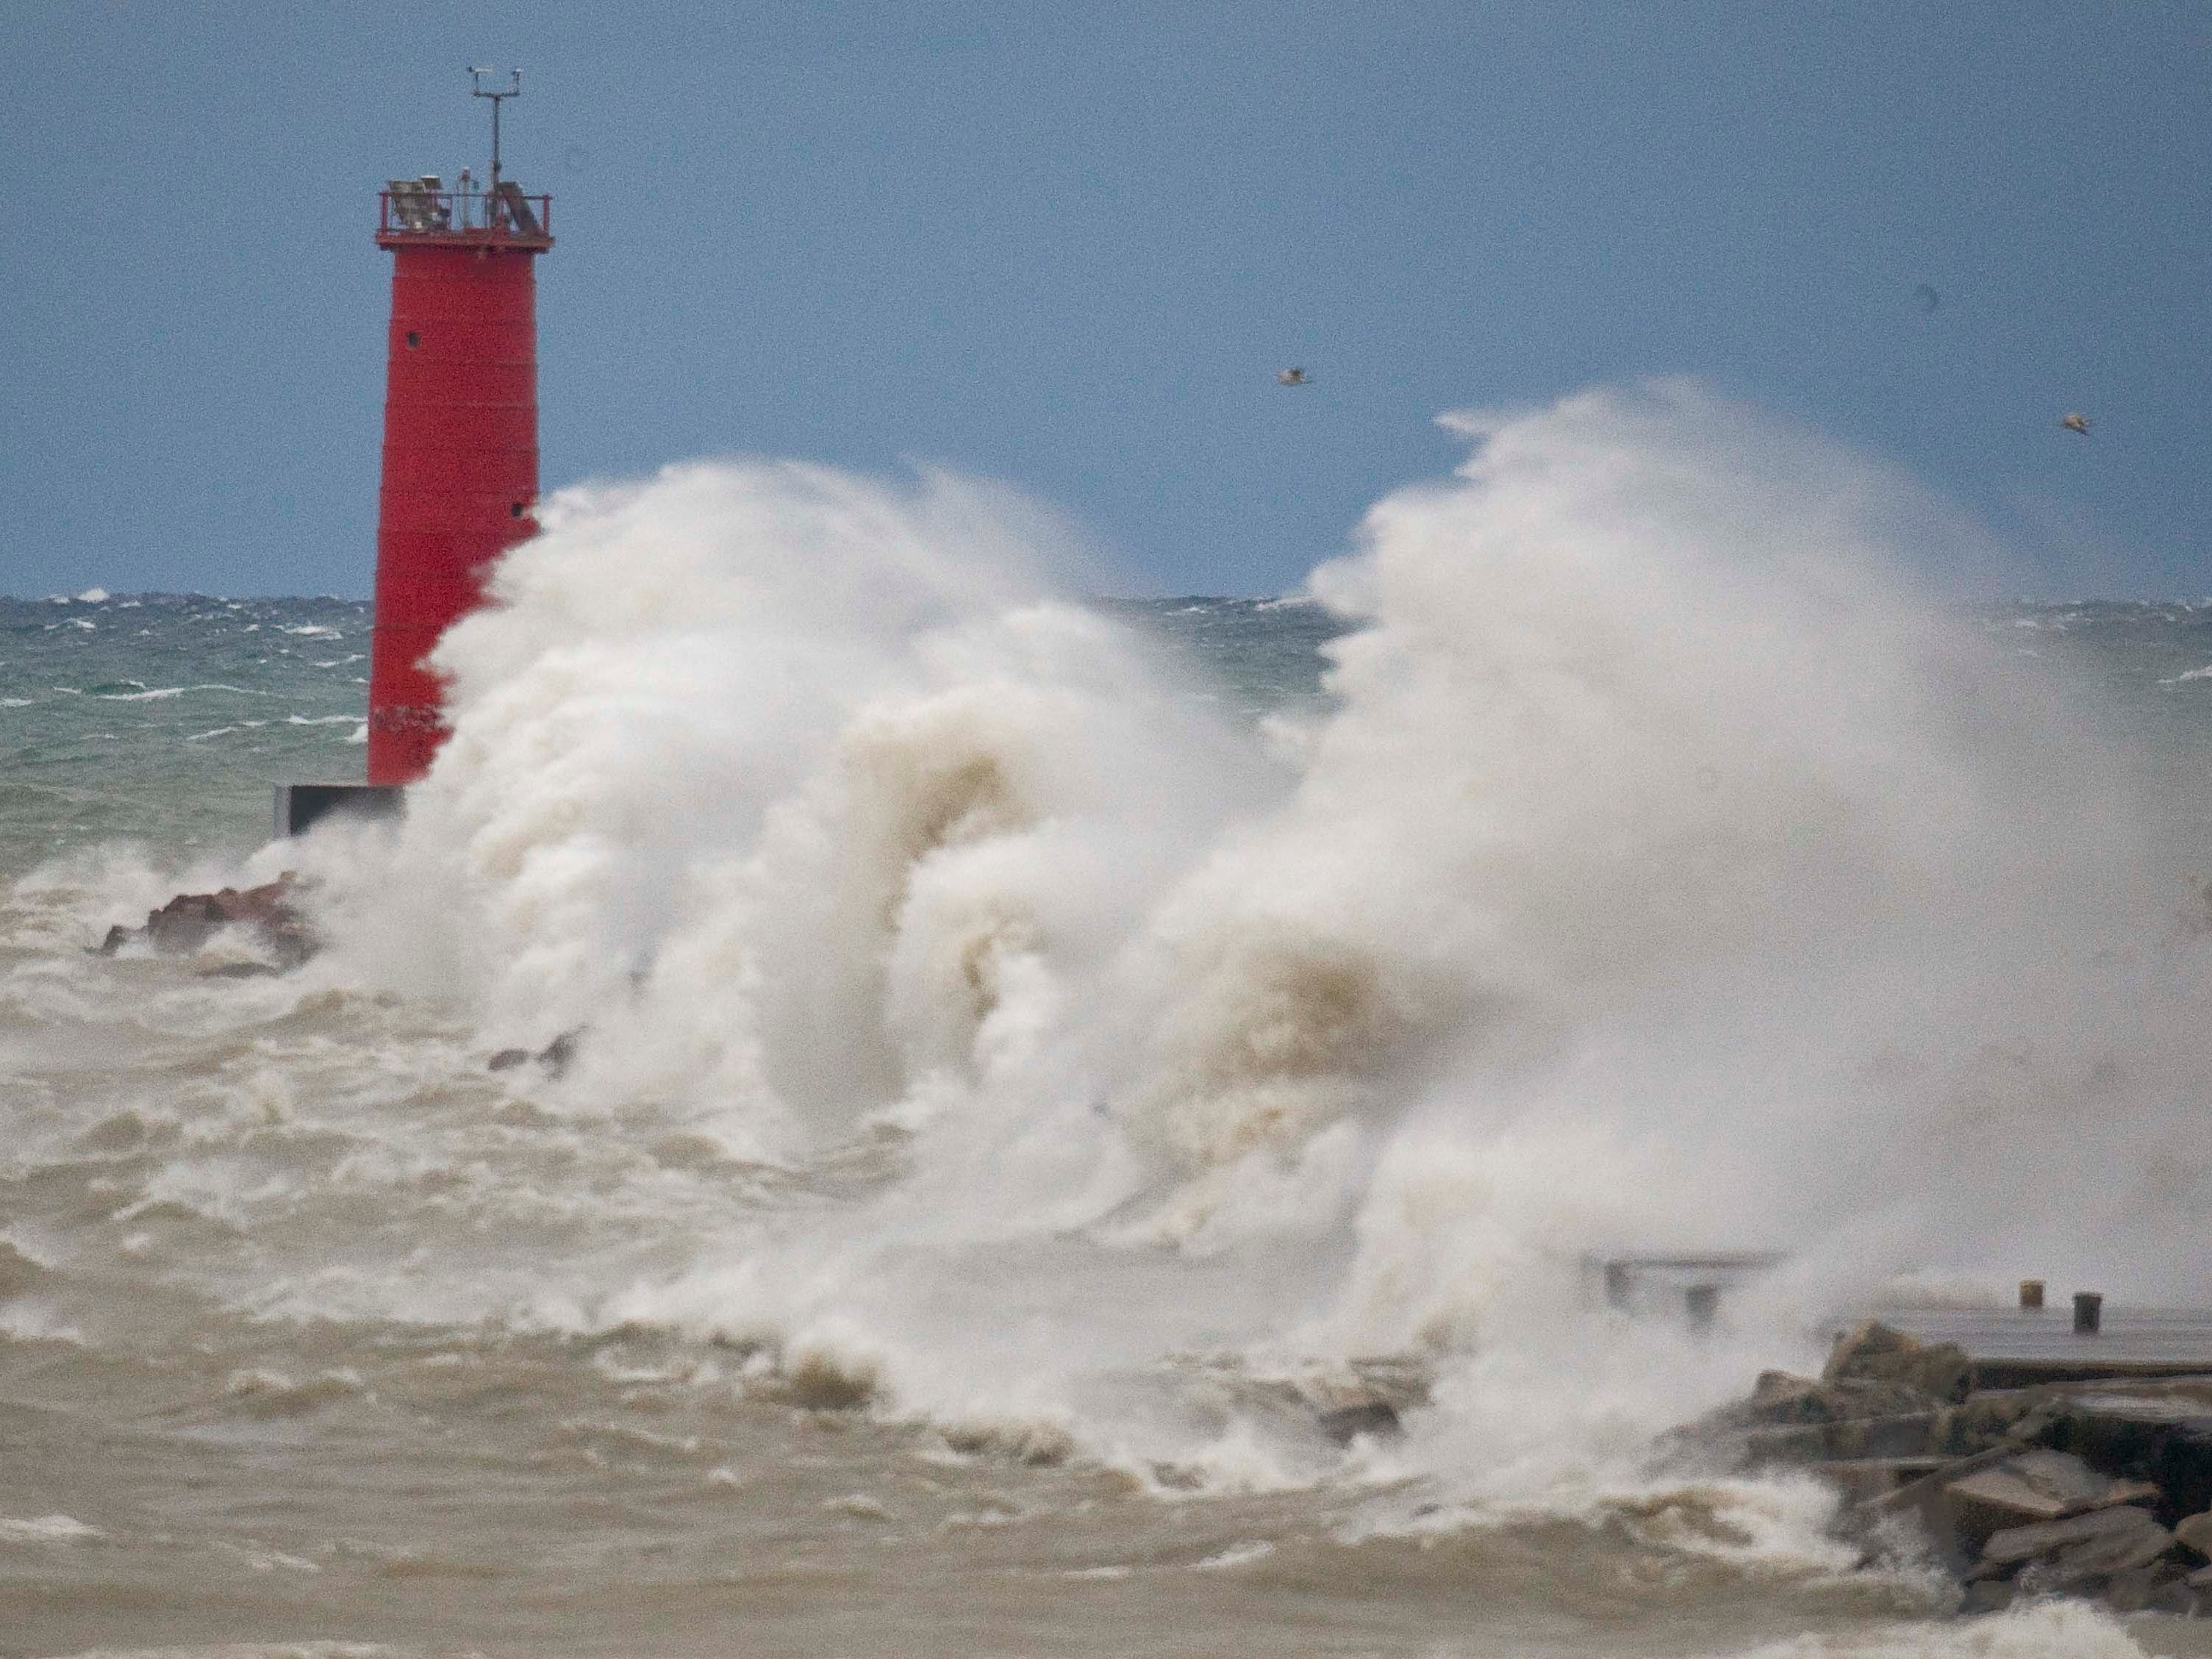 Strong winds blow nearly as tall as the Sheboygan lighthouse Oct. 19, 2011, in Sheboygan, Wis. FILE PHOTO